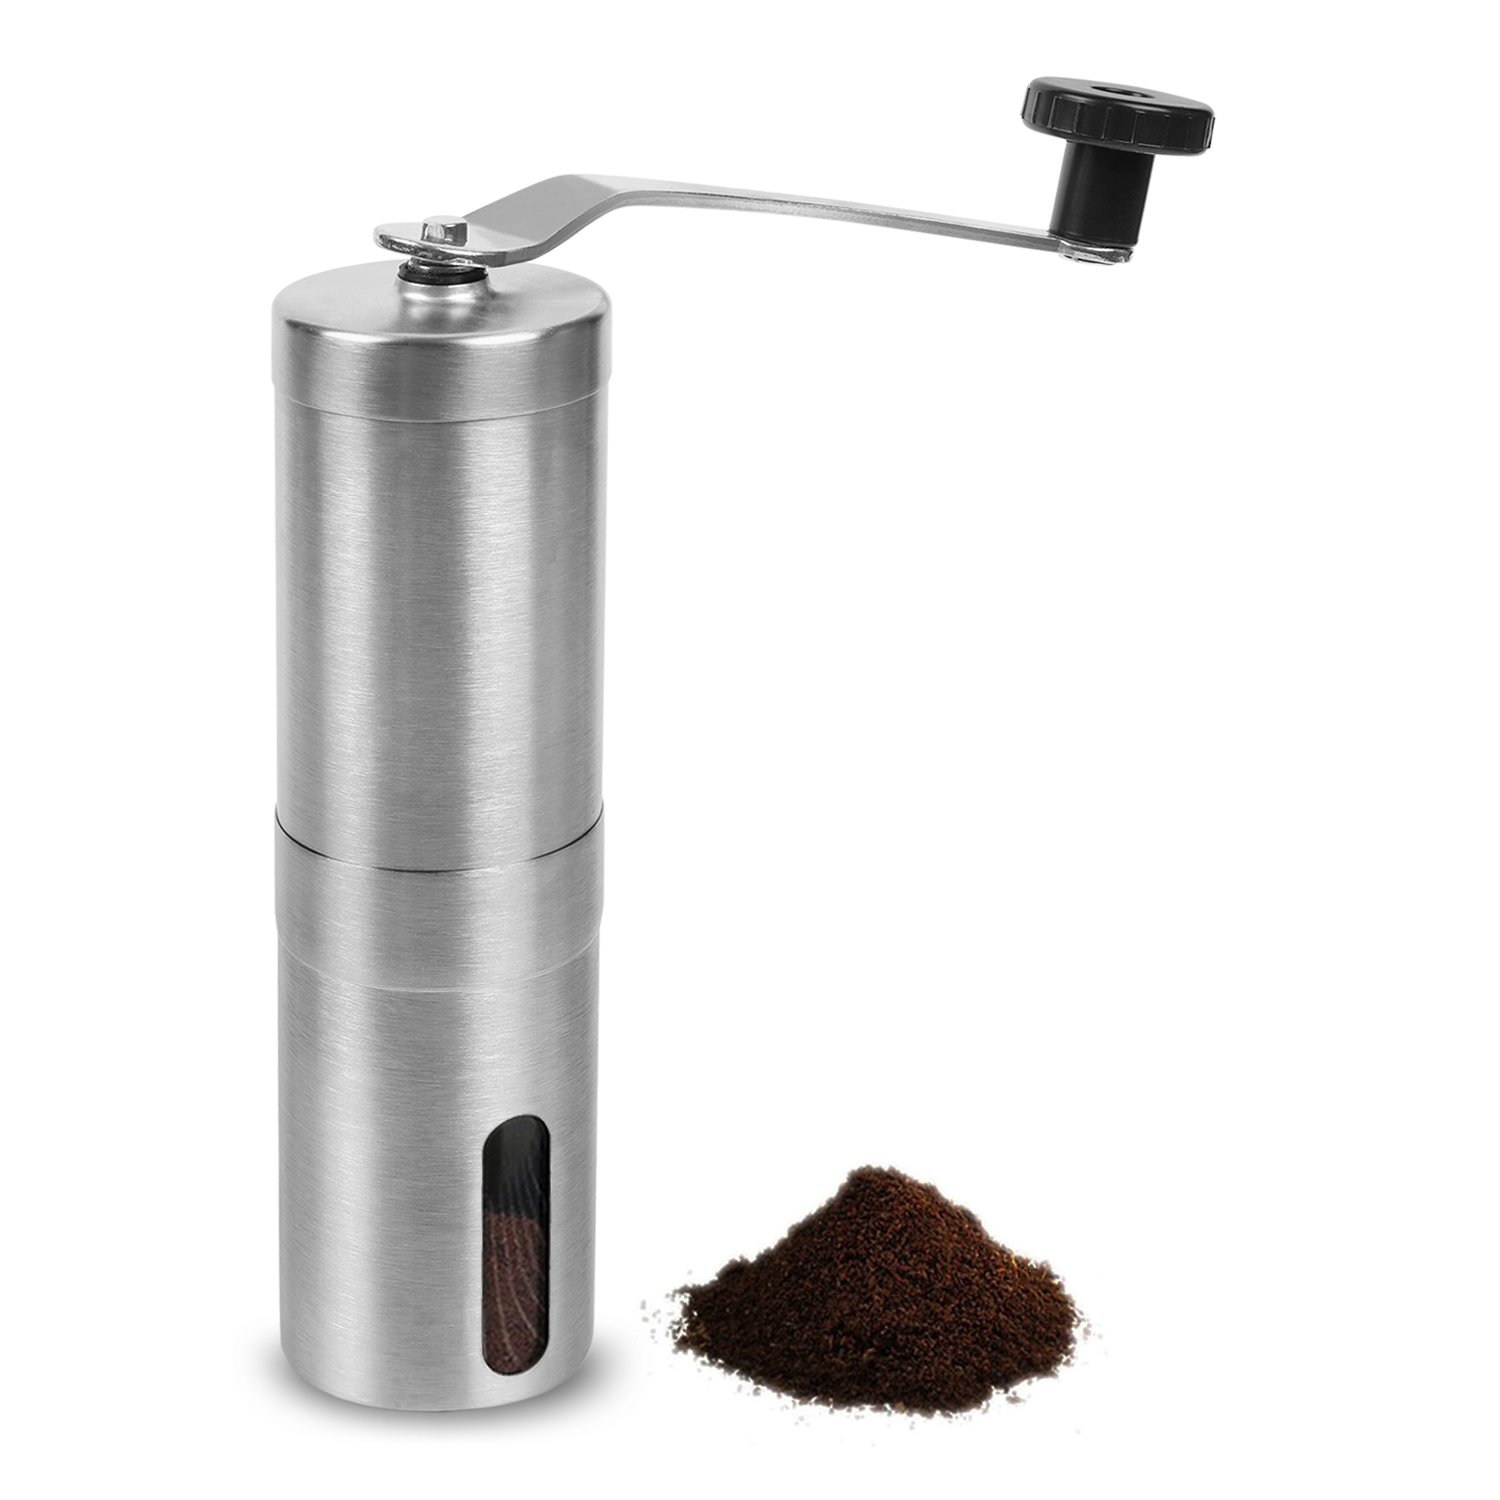 TopNoble Manual Coffee Grinder, Stainless Steel, Ceramic Conical Burr Mill, Ergonomics Hand Crank Design